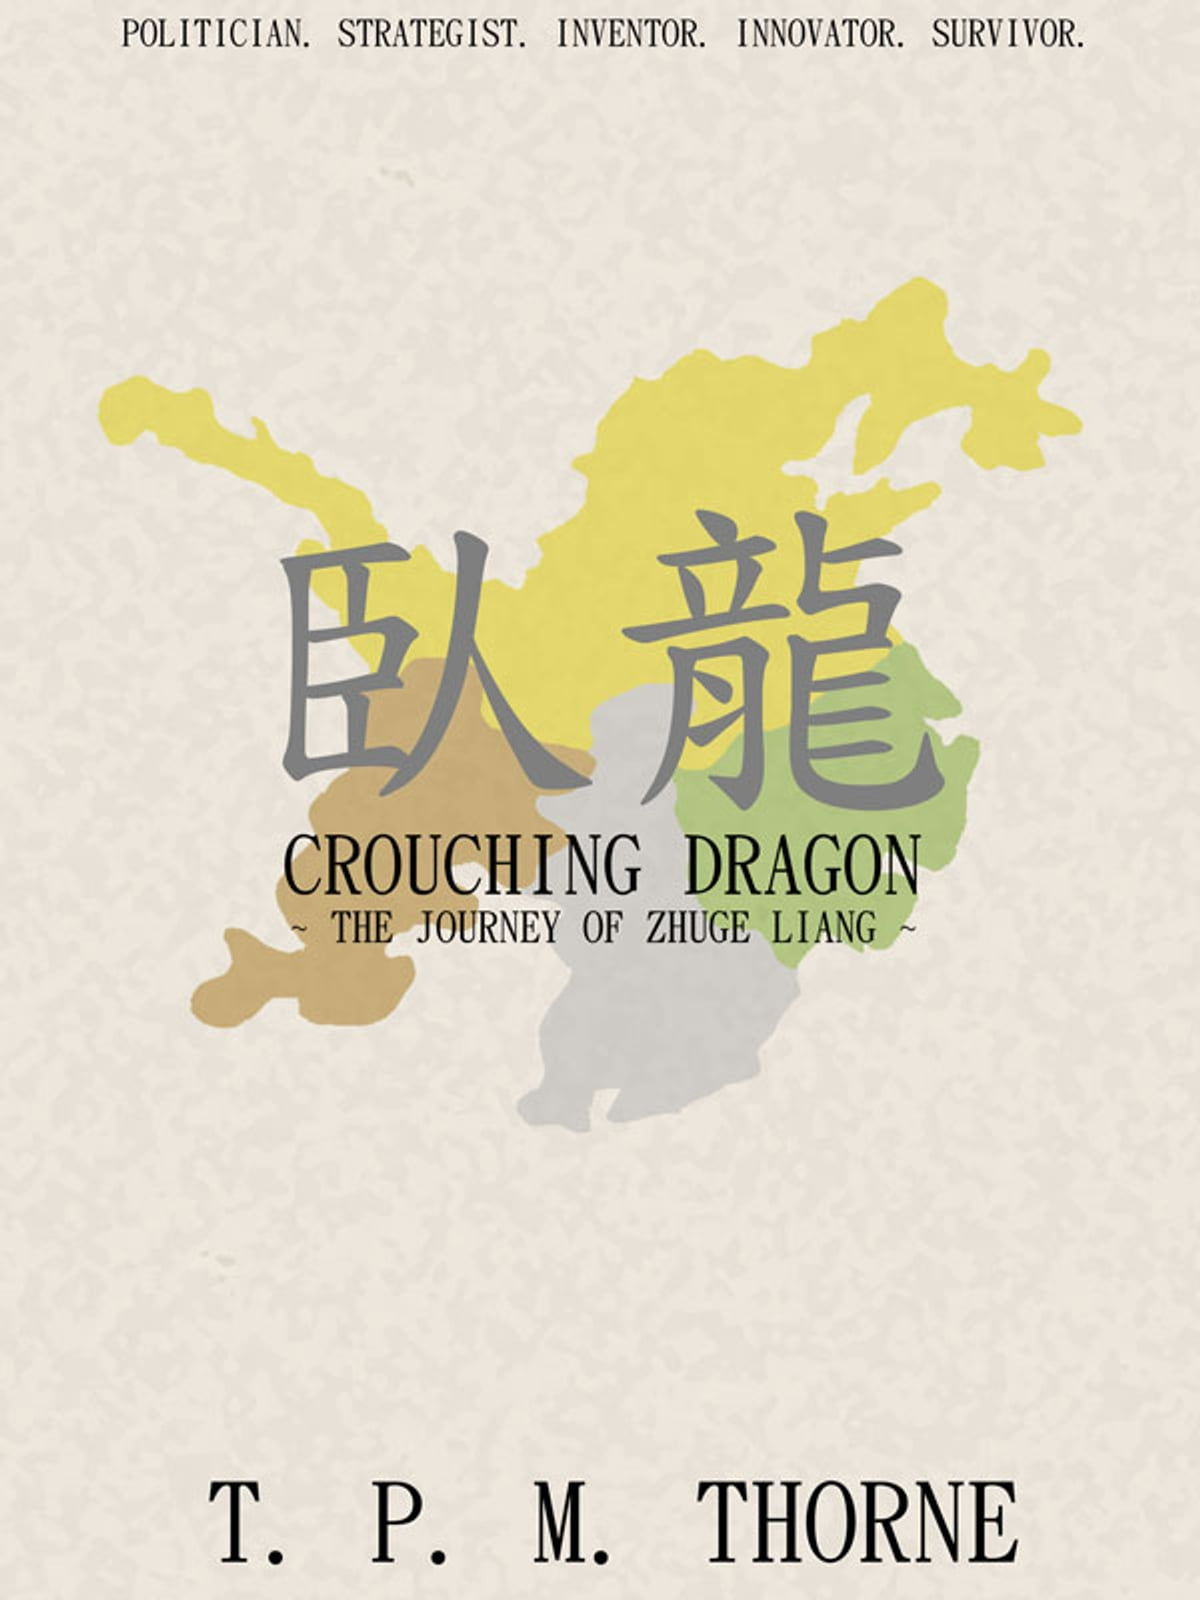 Crouching dragon the journey of zhuge liang ebook by t p m crouching dragon the journey of zhuge liang ebook by t p m thorne 9780957500402 rakuten kobo fandeluxe Epub